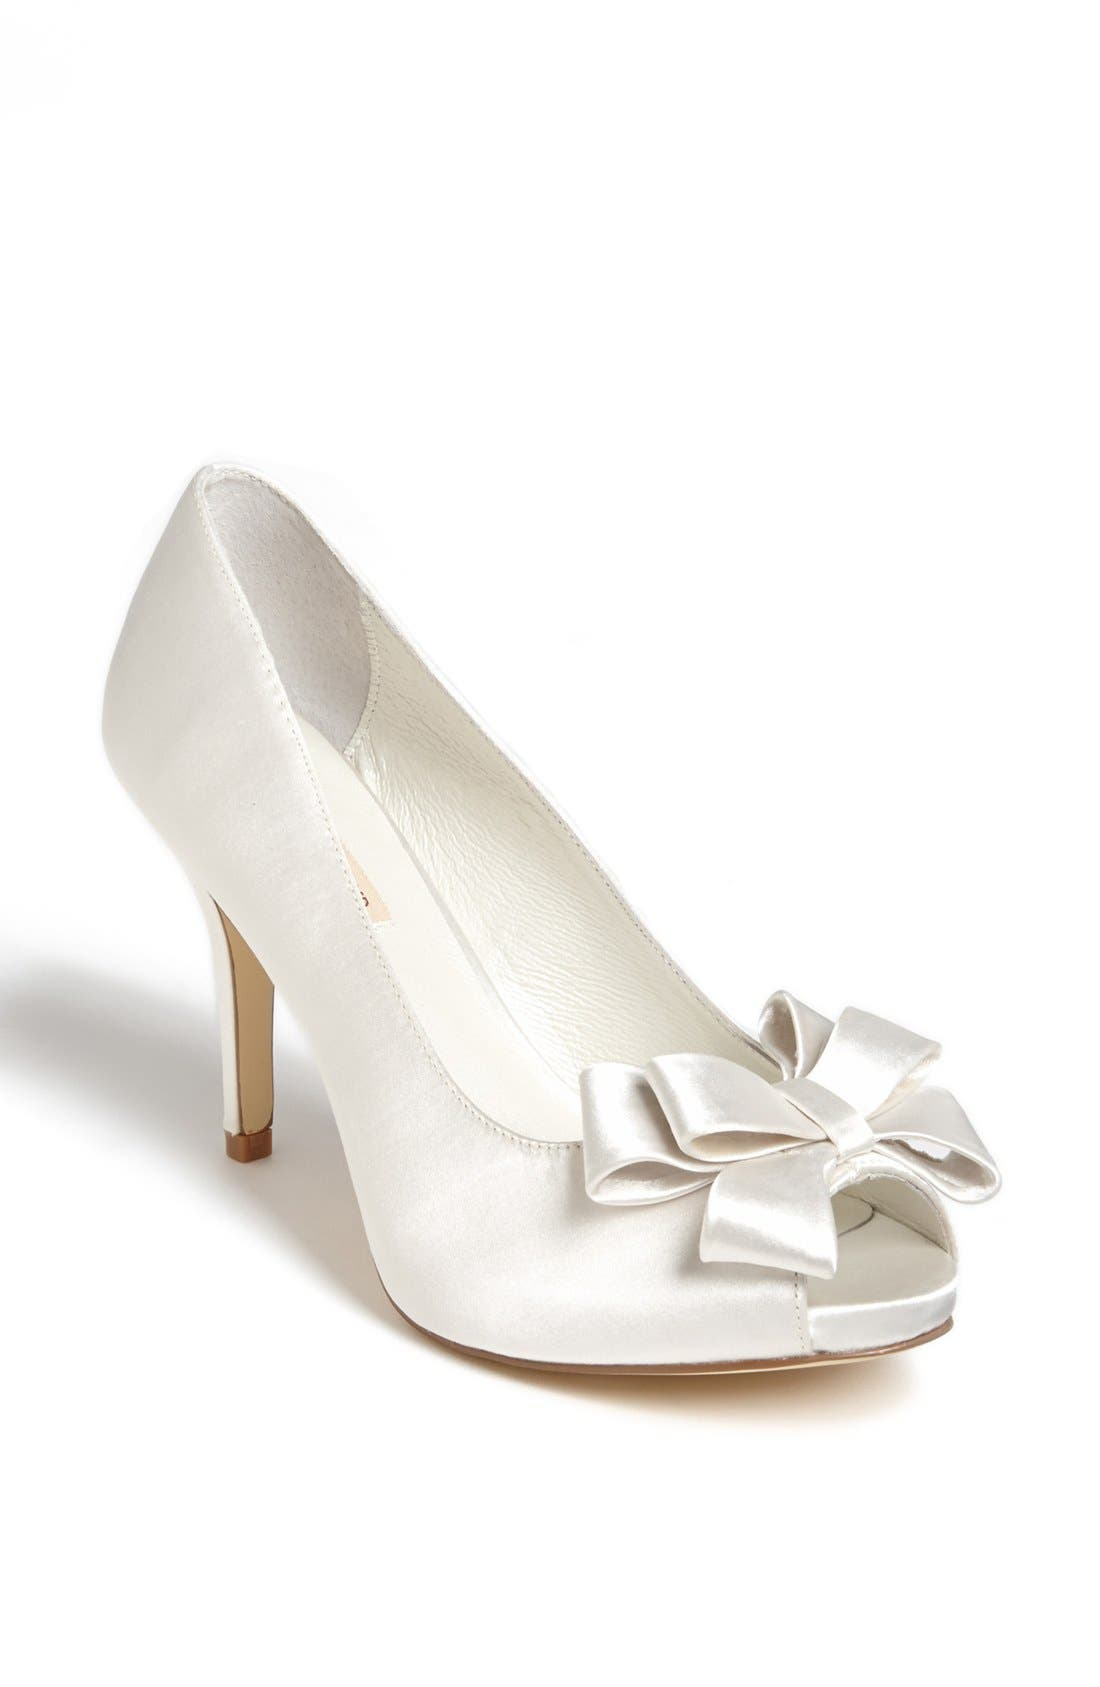 Bow Peep Toe Pump,                             Main thumbnail 1, color,                             Ivory